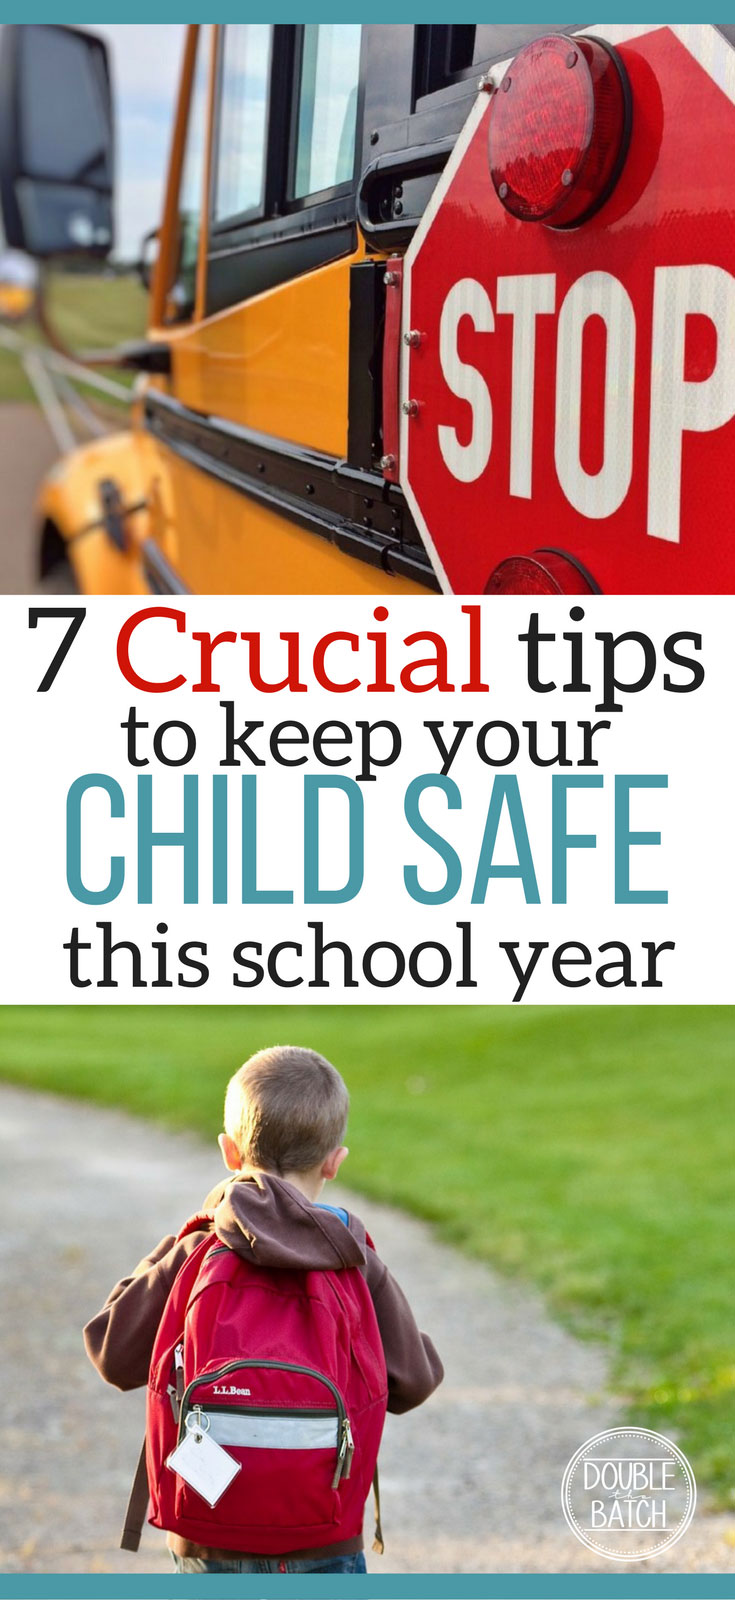 It's so important to be prepared when it comes to child safety! Here are great tips to keeping your child safe this school year!